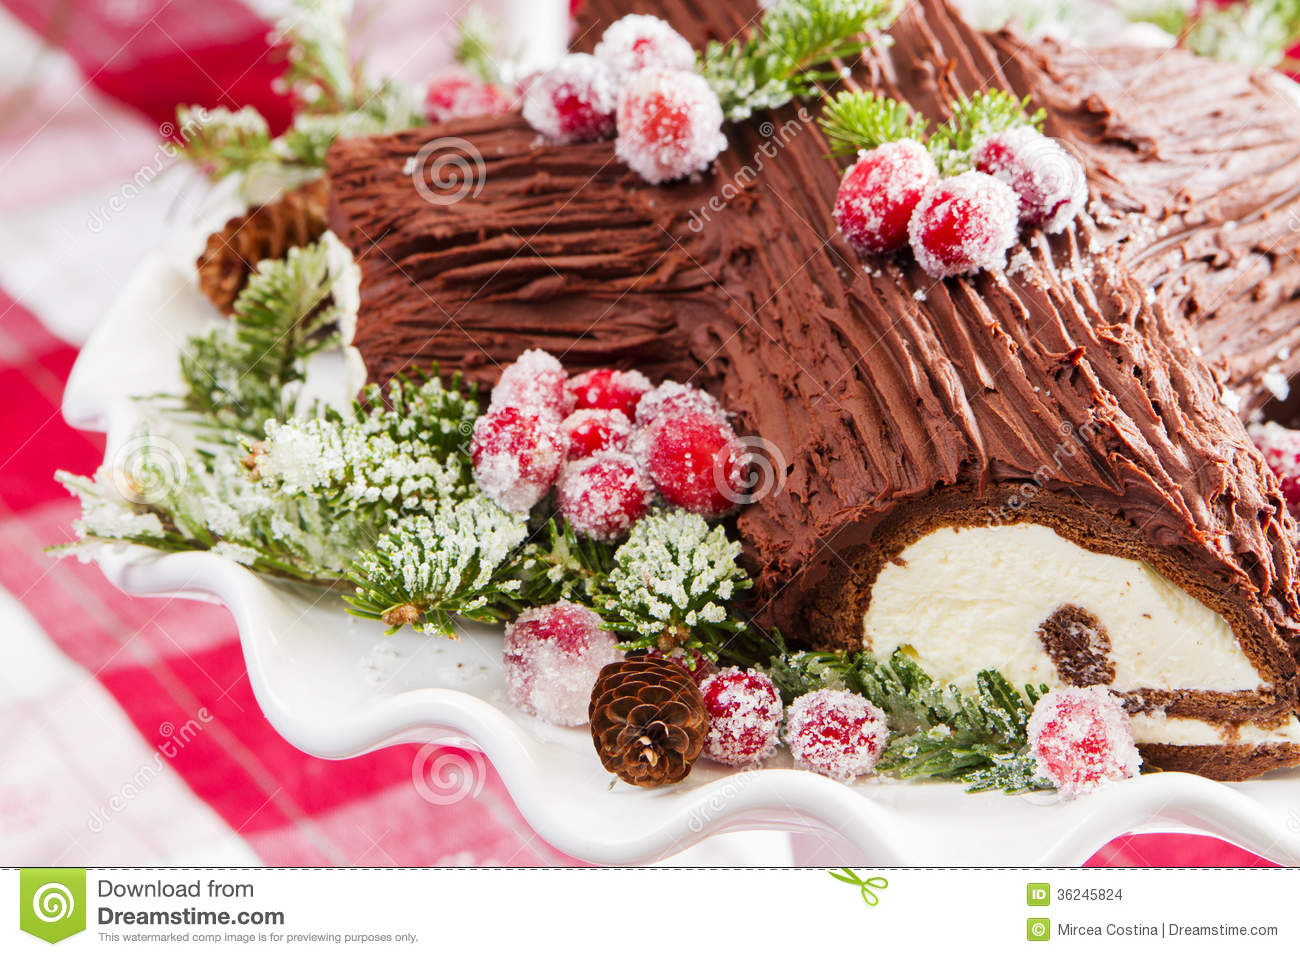 Pics for buche de noel decorations for Decorations exterieures de noel